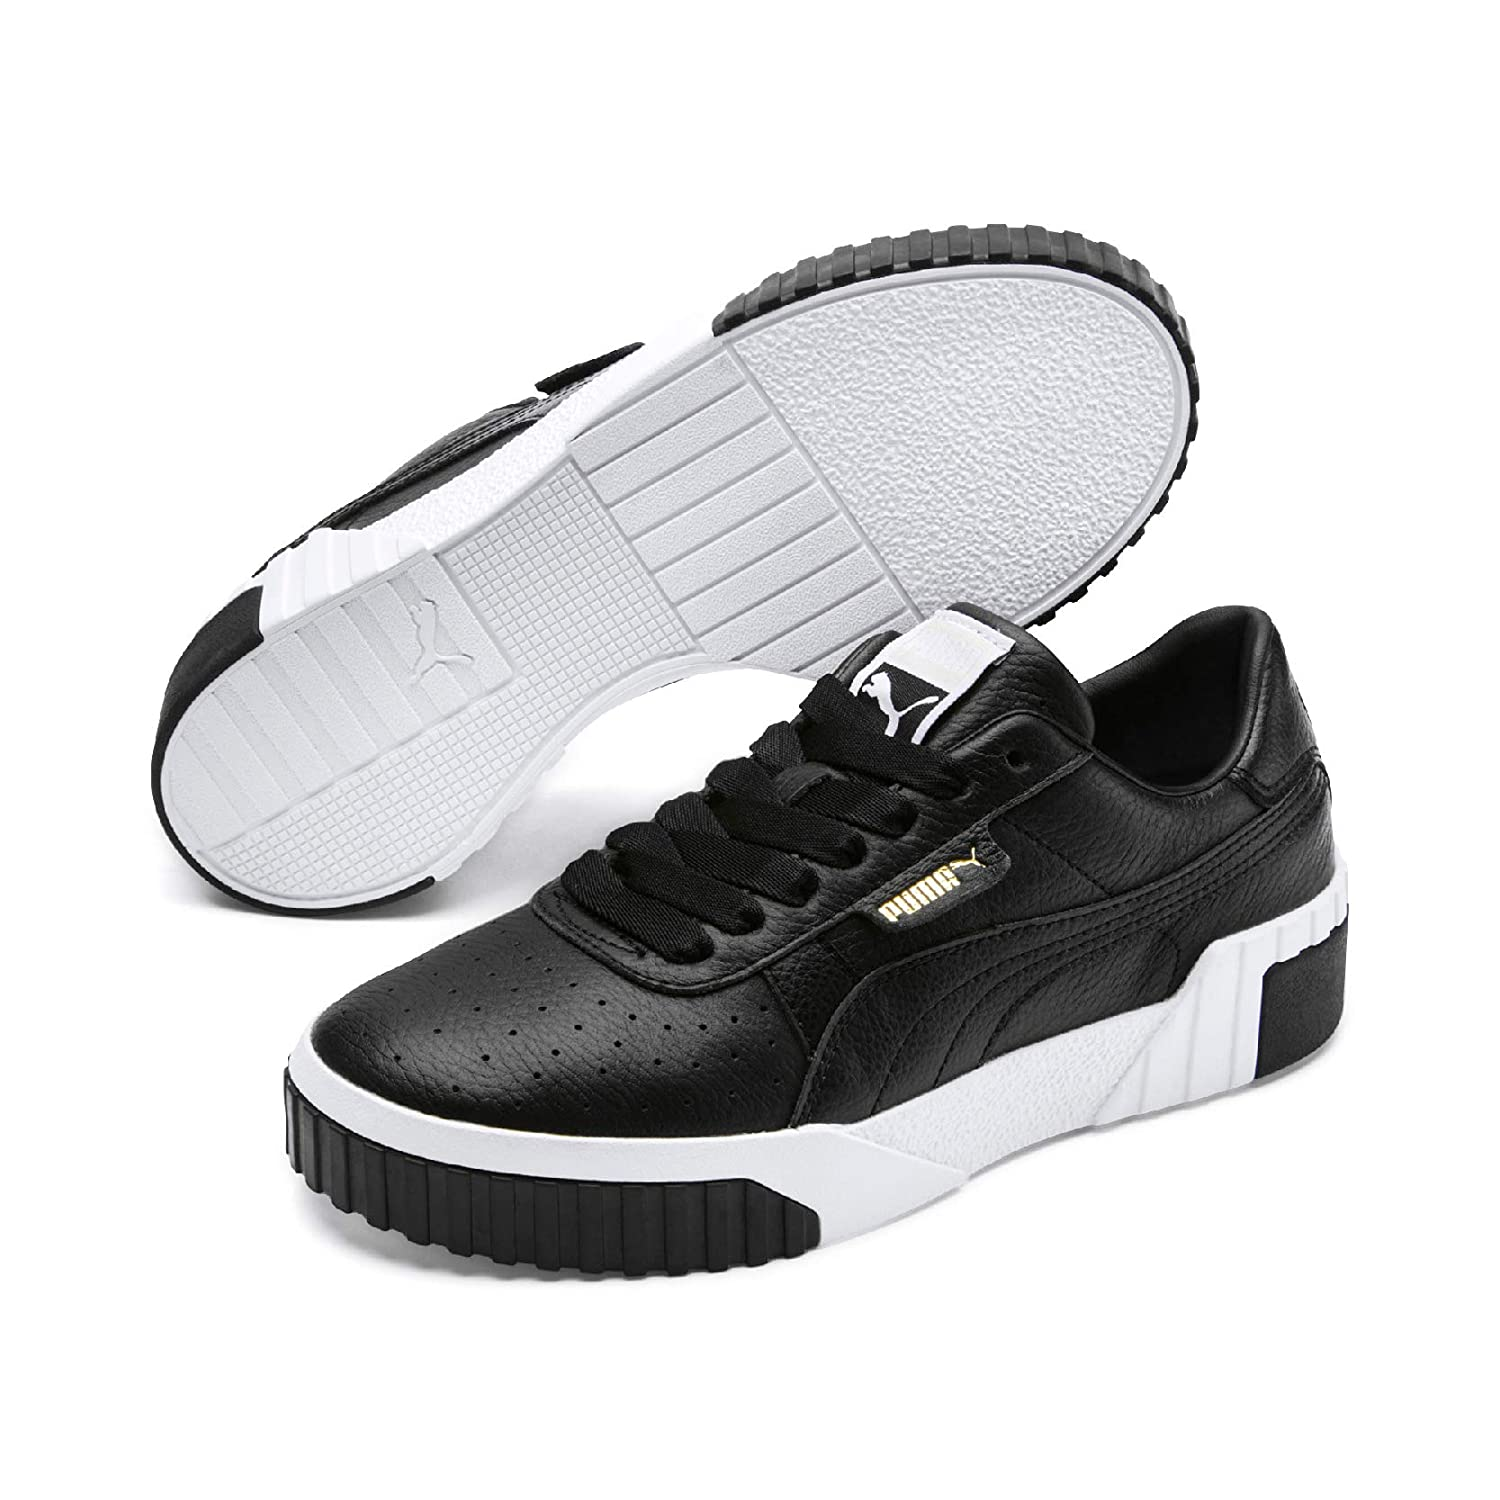 outlet sale select for best suitable for men/women Amazon.com | PUMA Cali Womens Black/White Sneakers-UK 7 ...